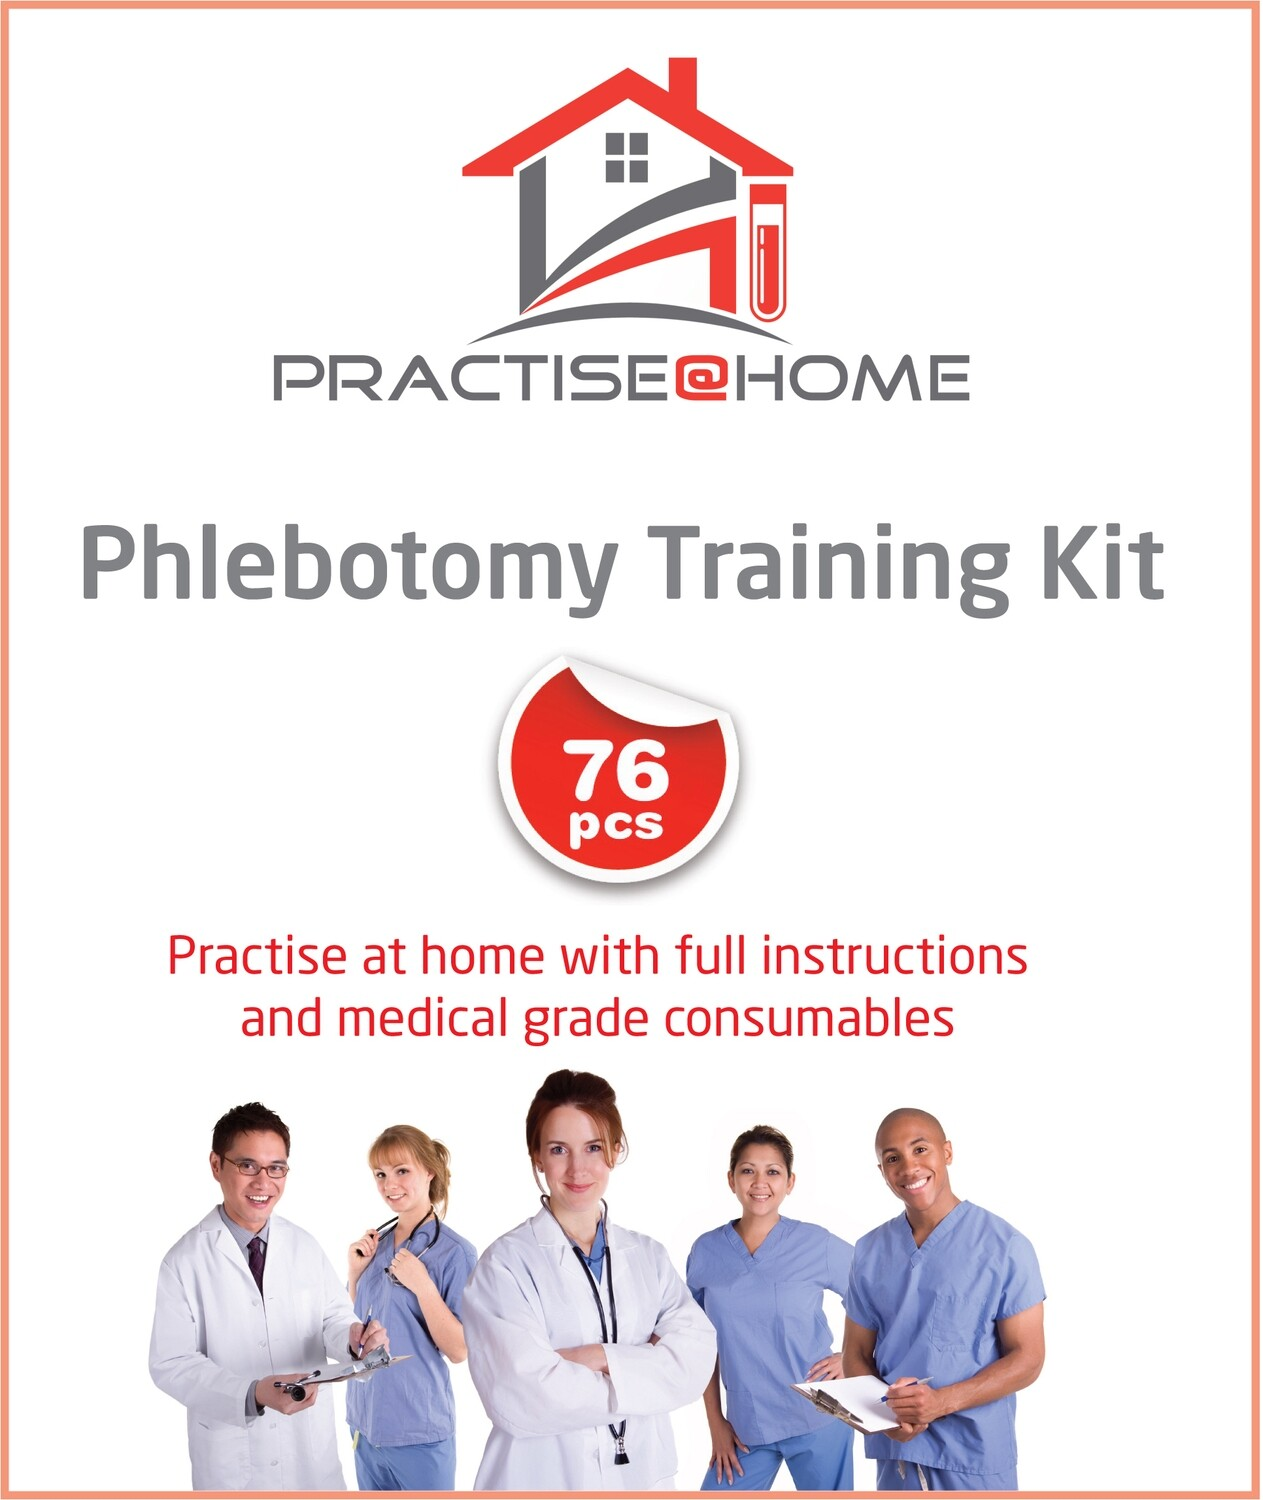 PHLEBOTOMY TRAINING KIT - Practise@Home with Mini-Arm Trainer and full instructions